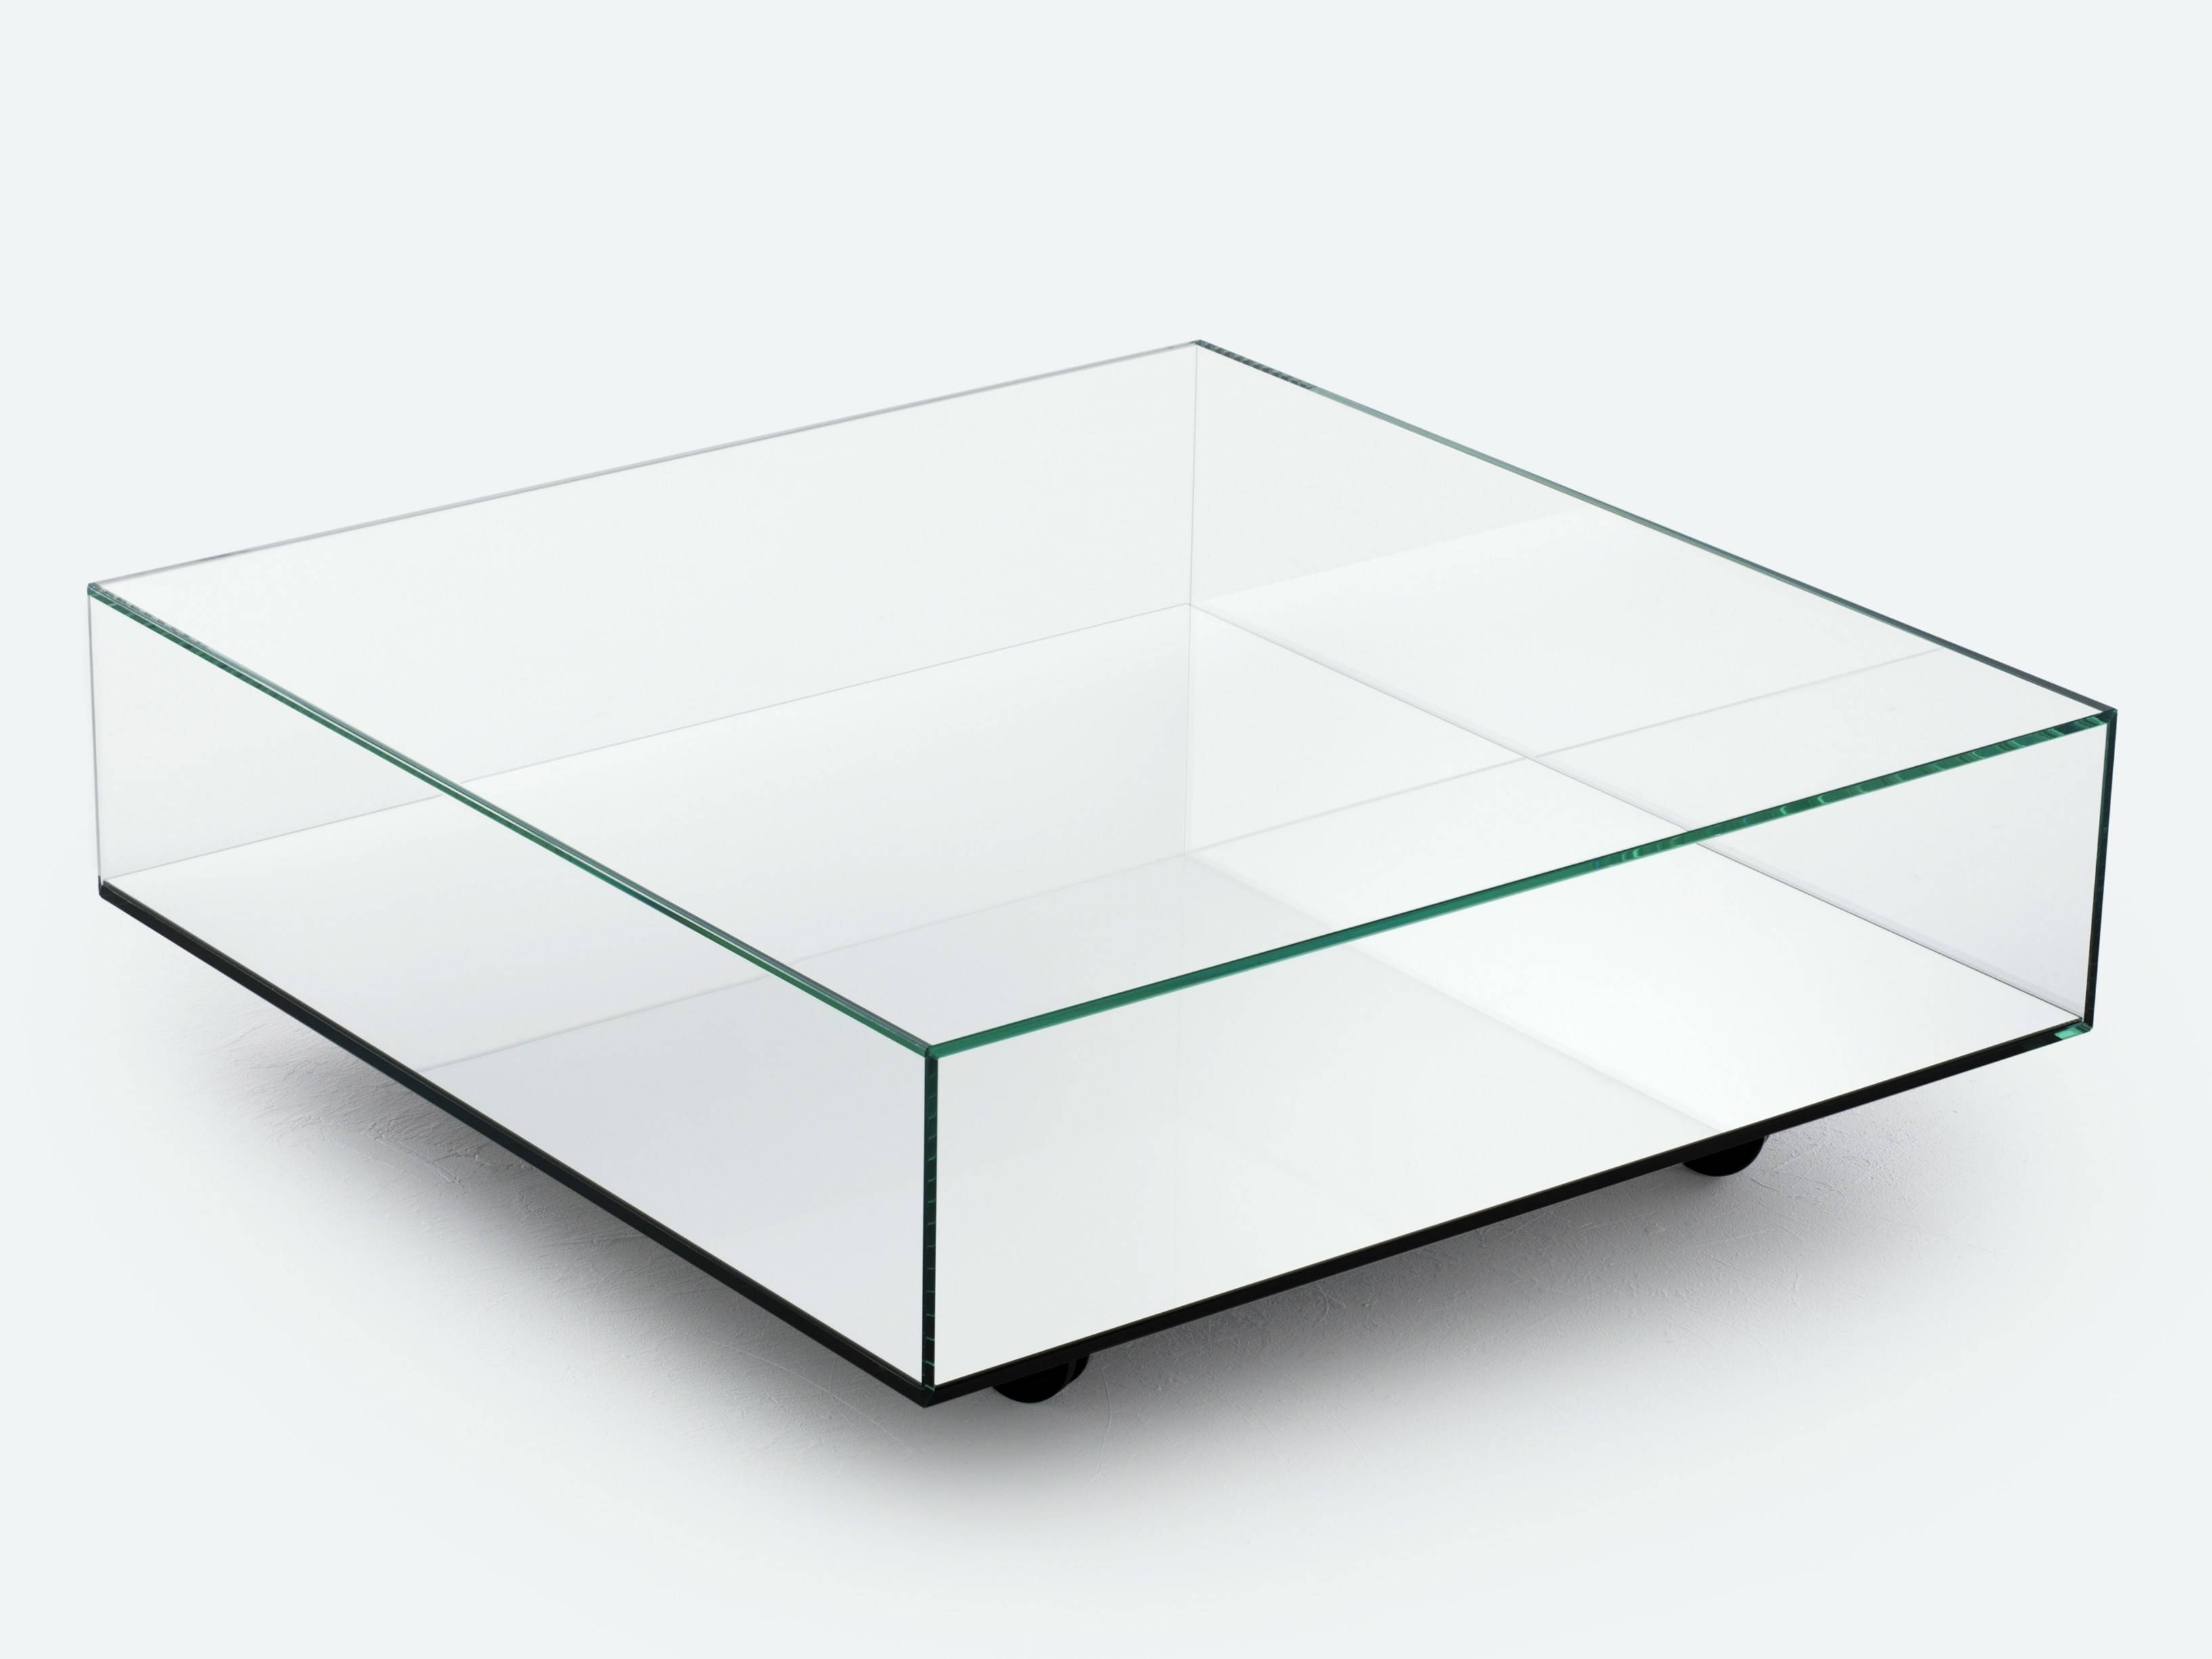 Square Low Profile Mirrored Glass Top Coffe Table With Storage And With Regard To Square Low Coffee Tables (View 19 of 20)